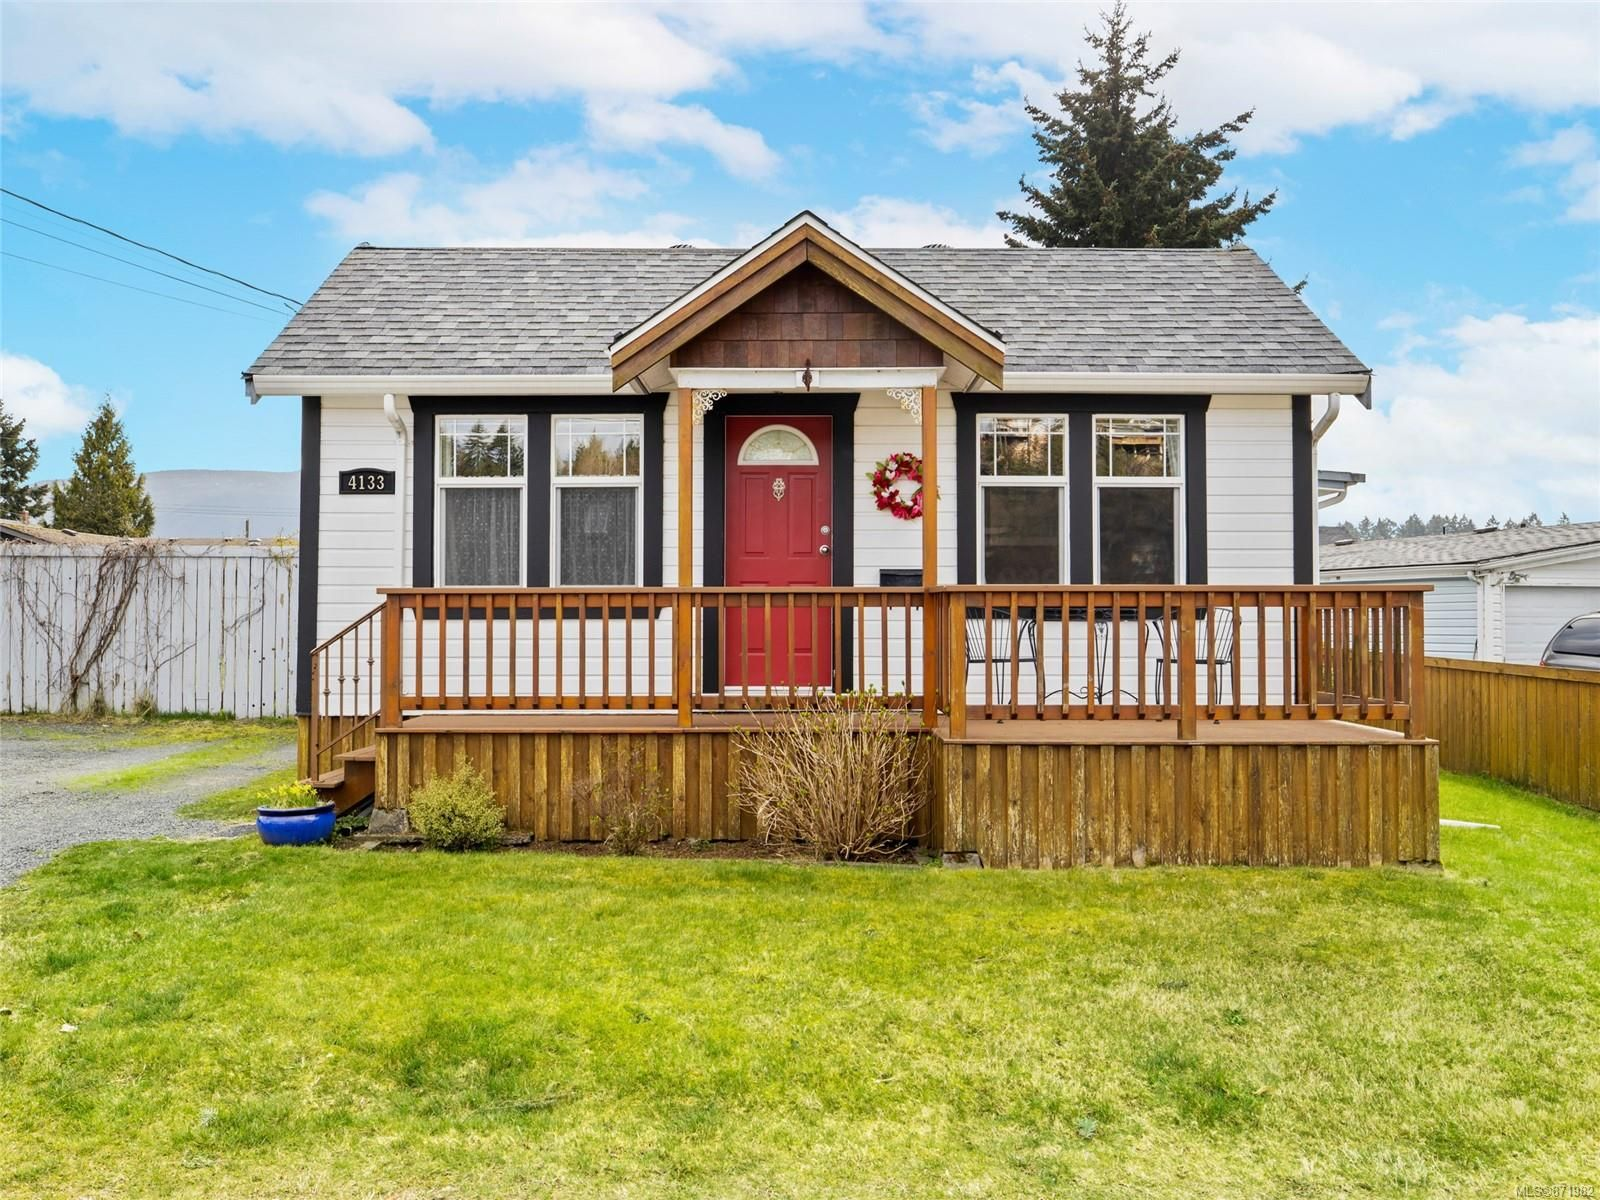 Main Photo: 4133 Wellesley Ave in : Na Uplands House for sale (Nanaimo)  : MLS®# 871982